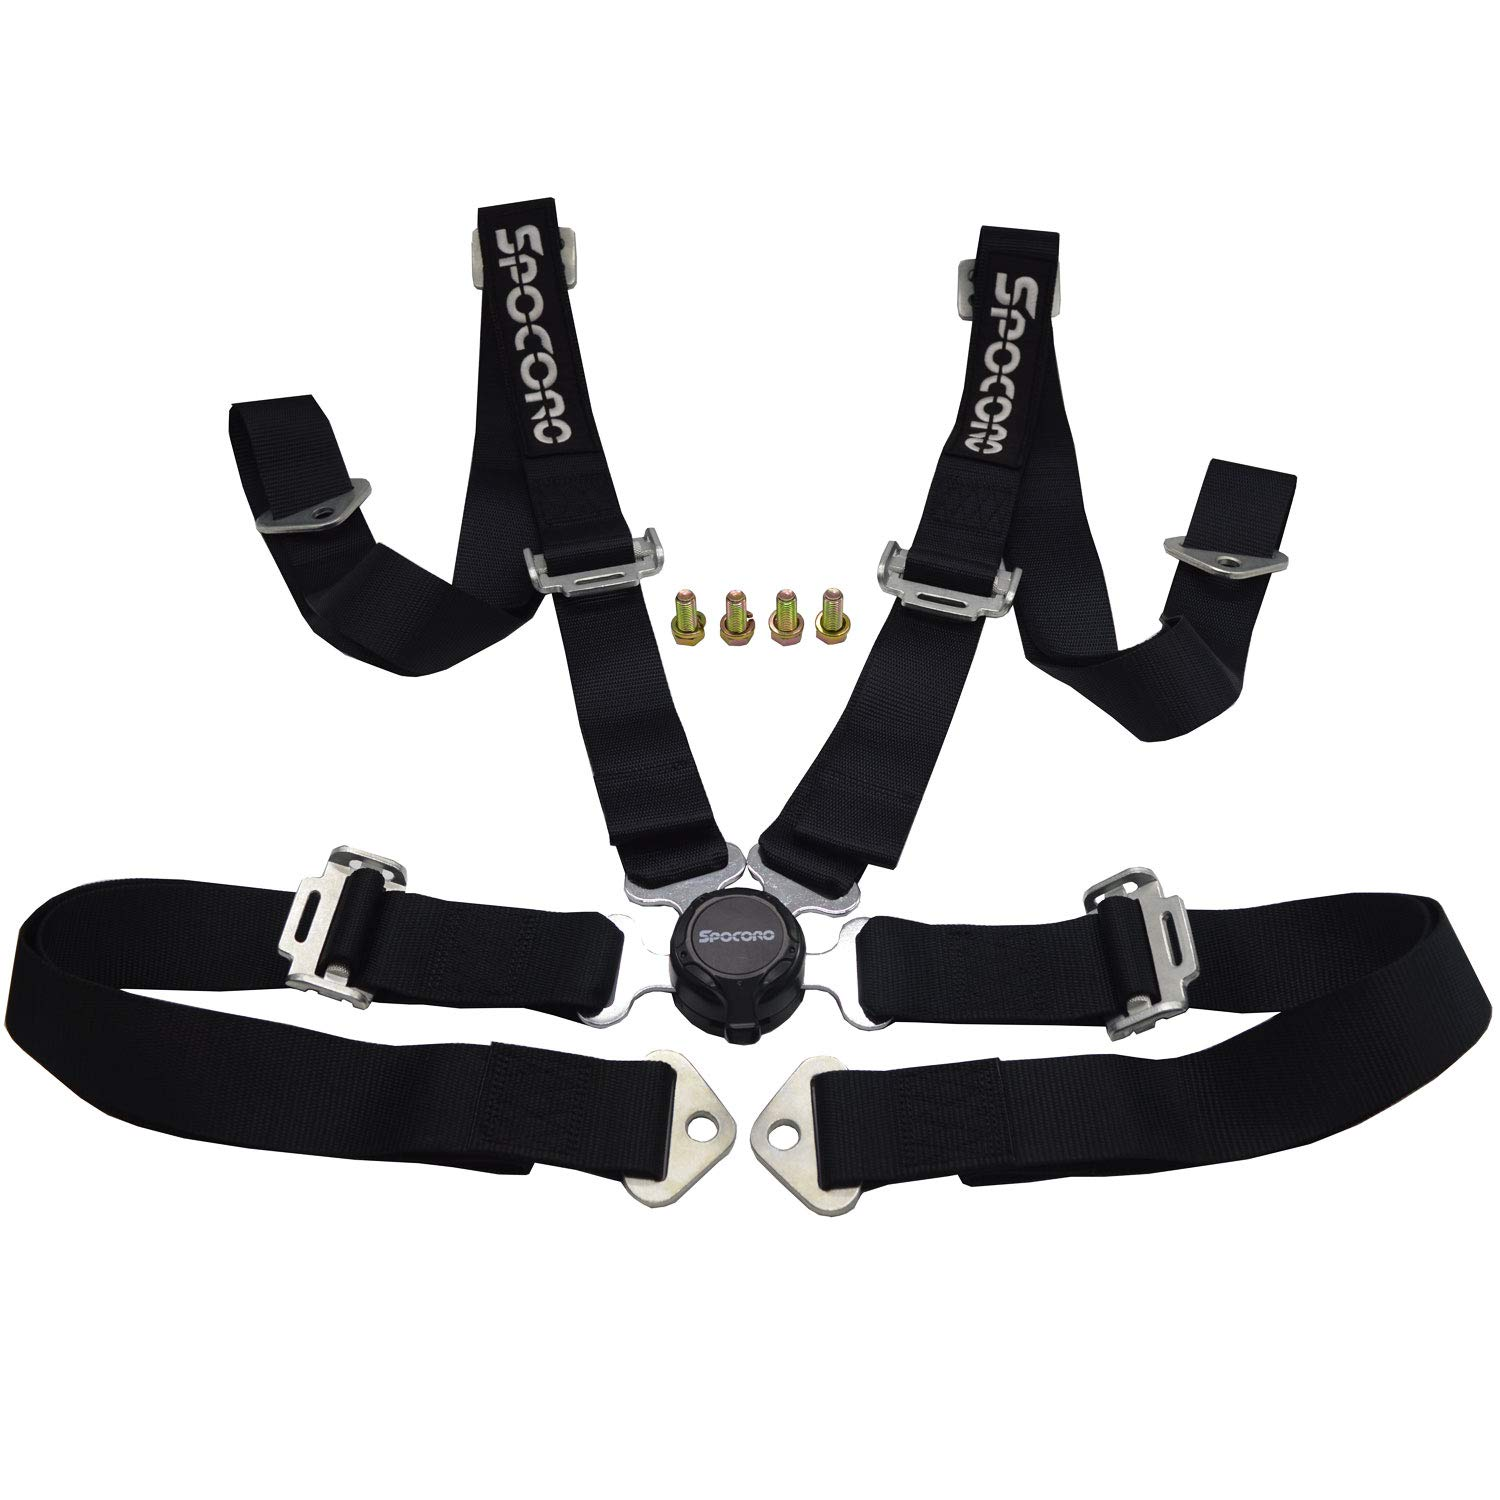 Spocoro SB-0204RD-QR-1 4 Point Racing Safety Harness Cam Lock with 2 Straps Pack of 1 Red